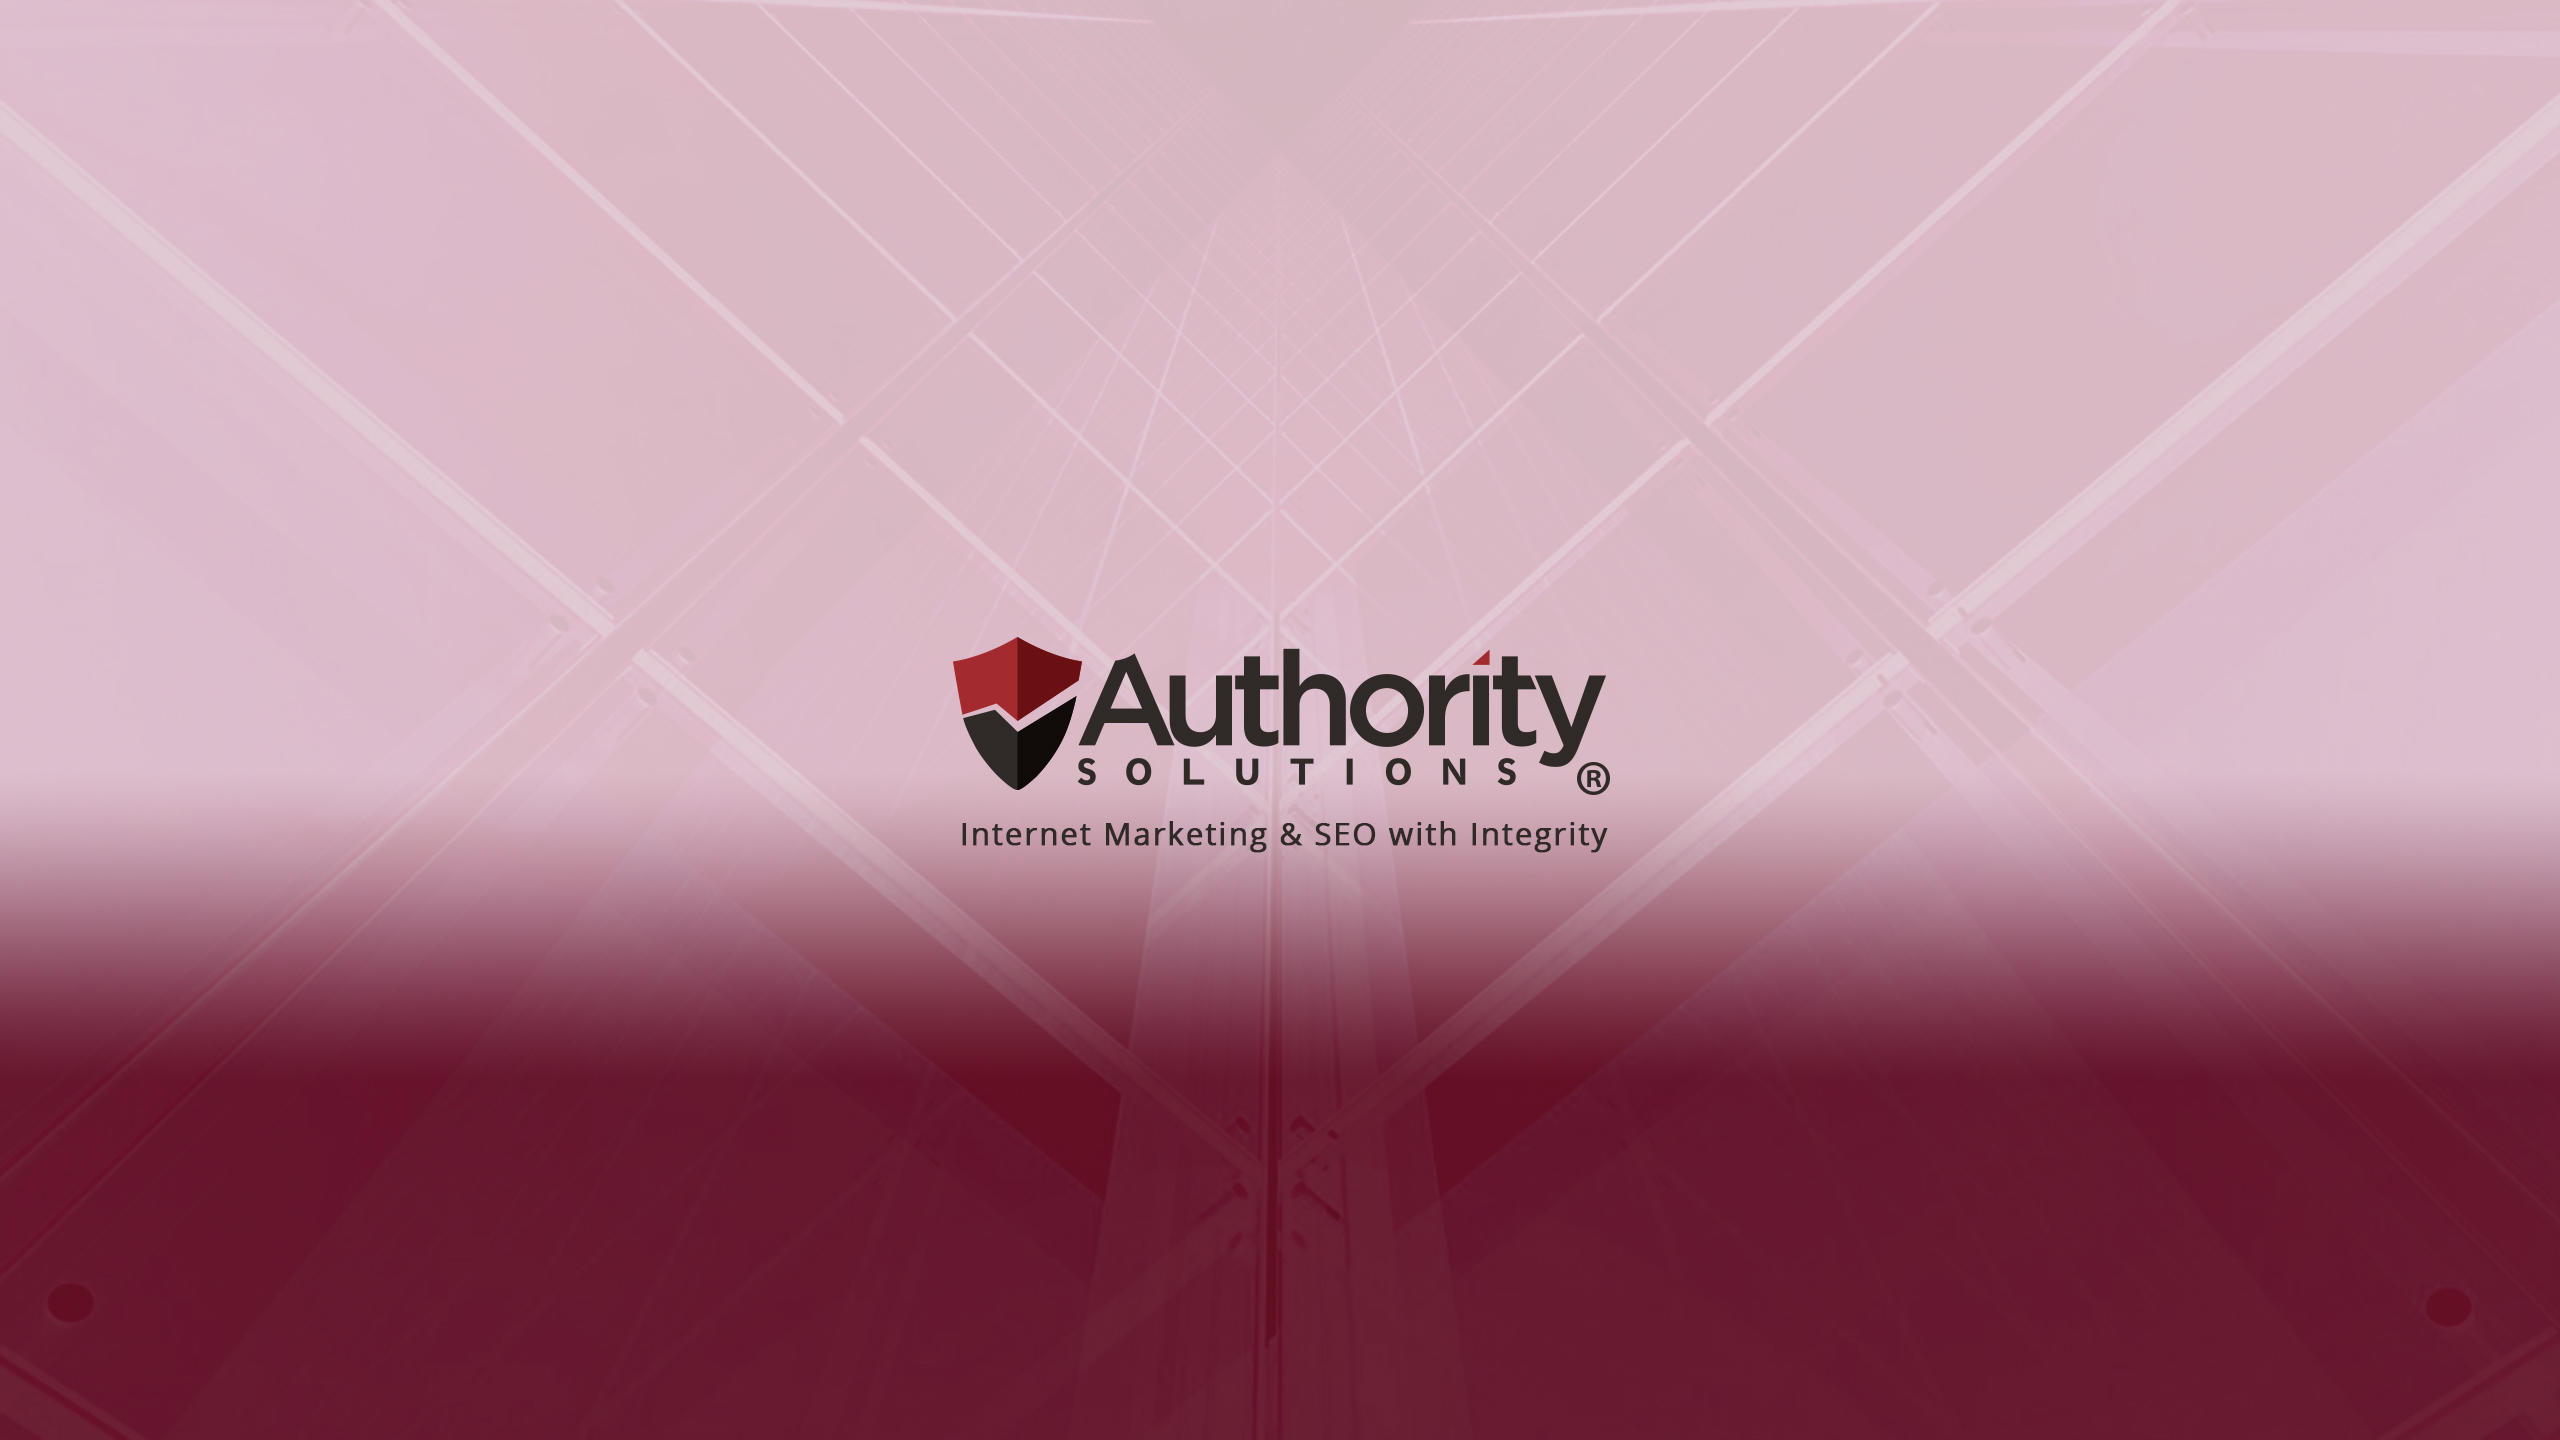 Authority Solutions®